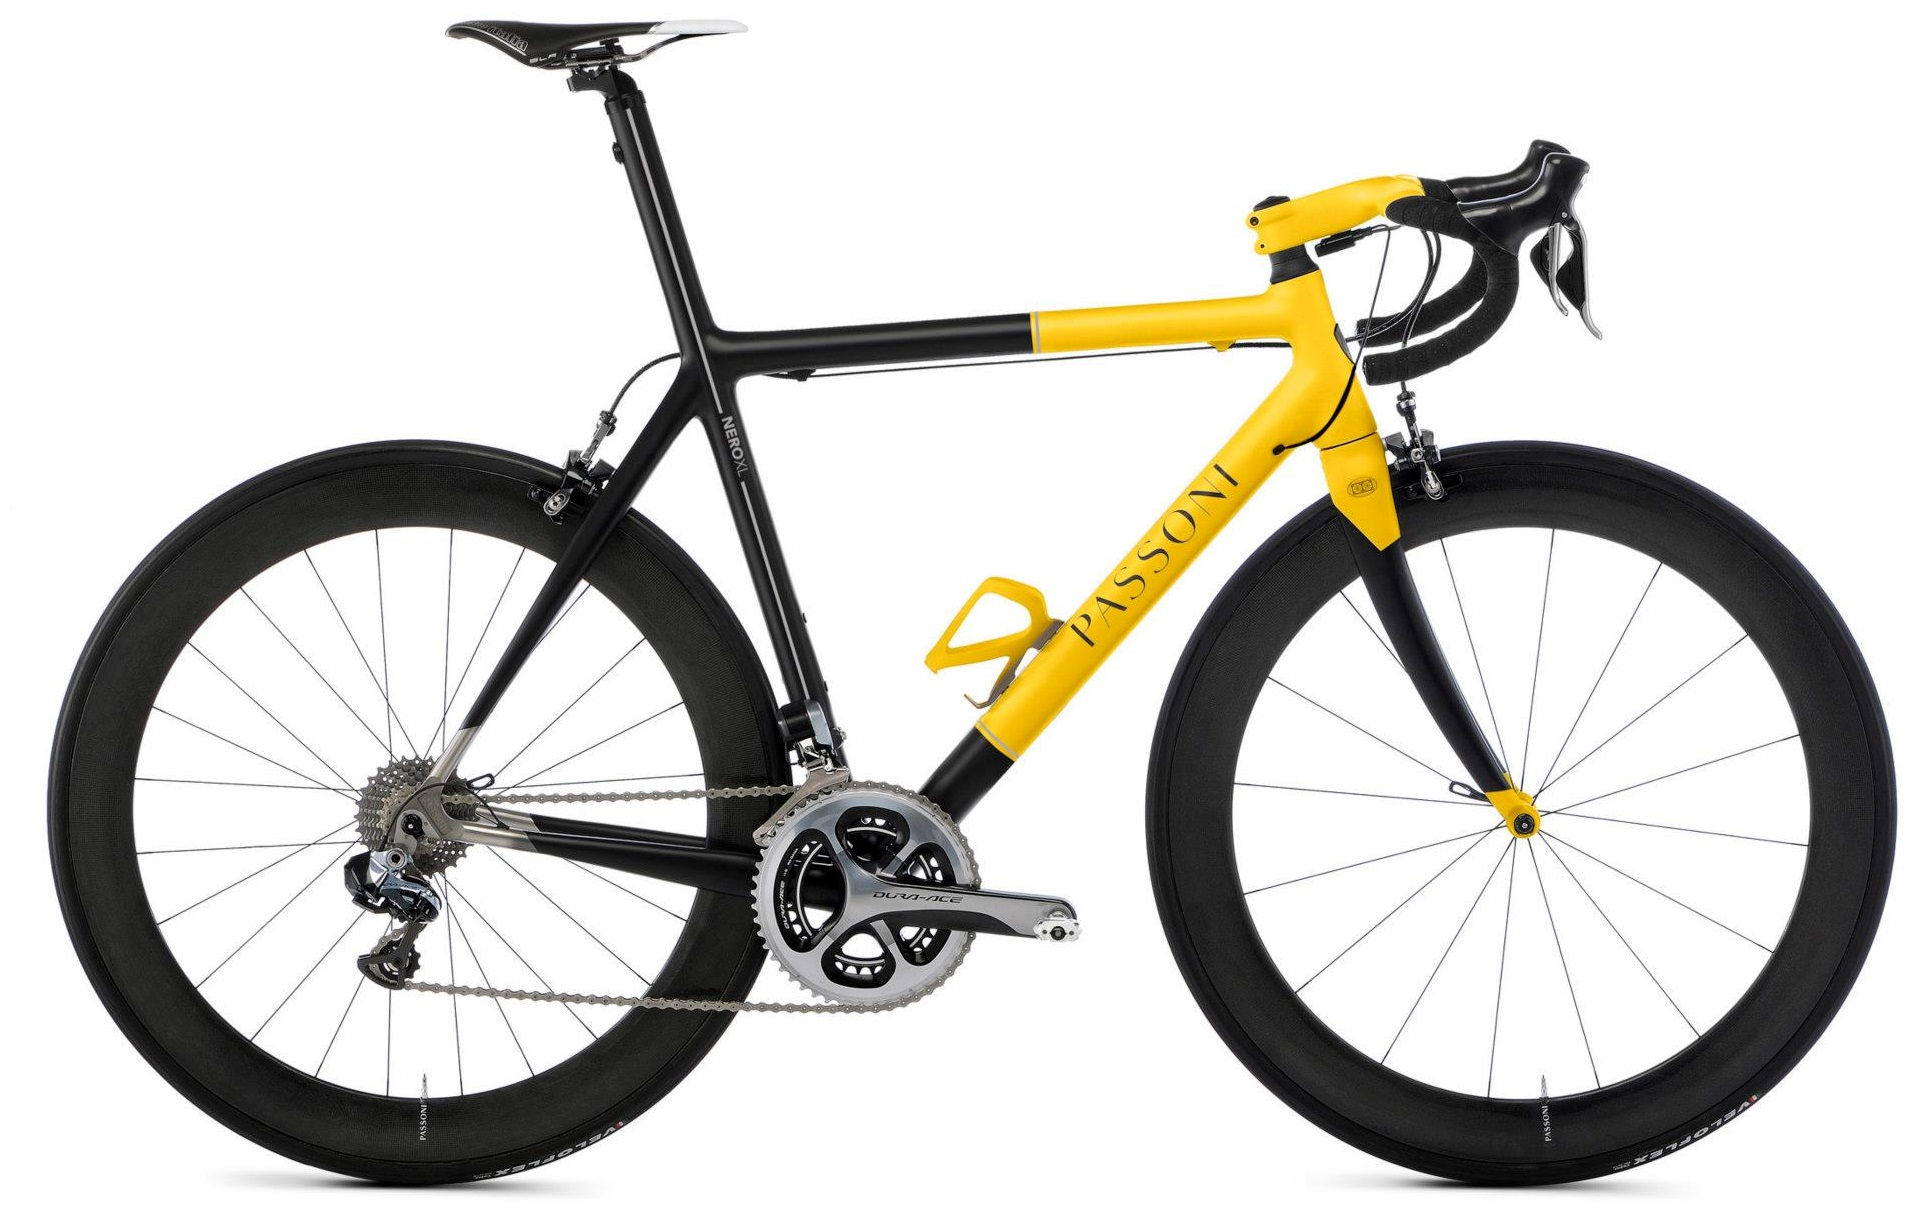 Passoni Nero XL 2013 yellowneuroticarnutzColnago-C59-Italia-2013 yellow custom